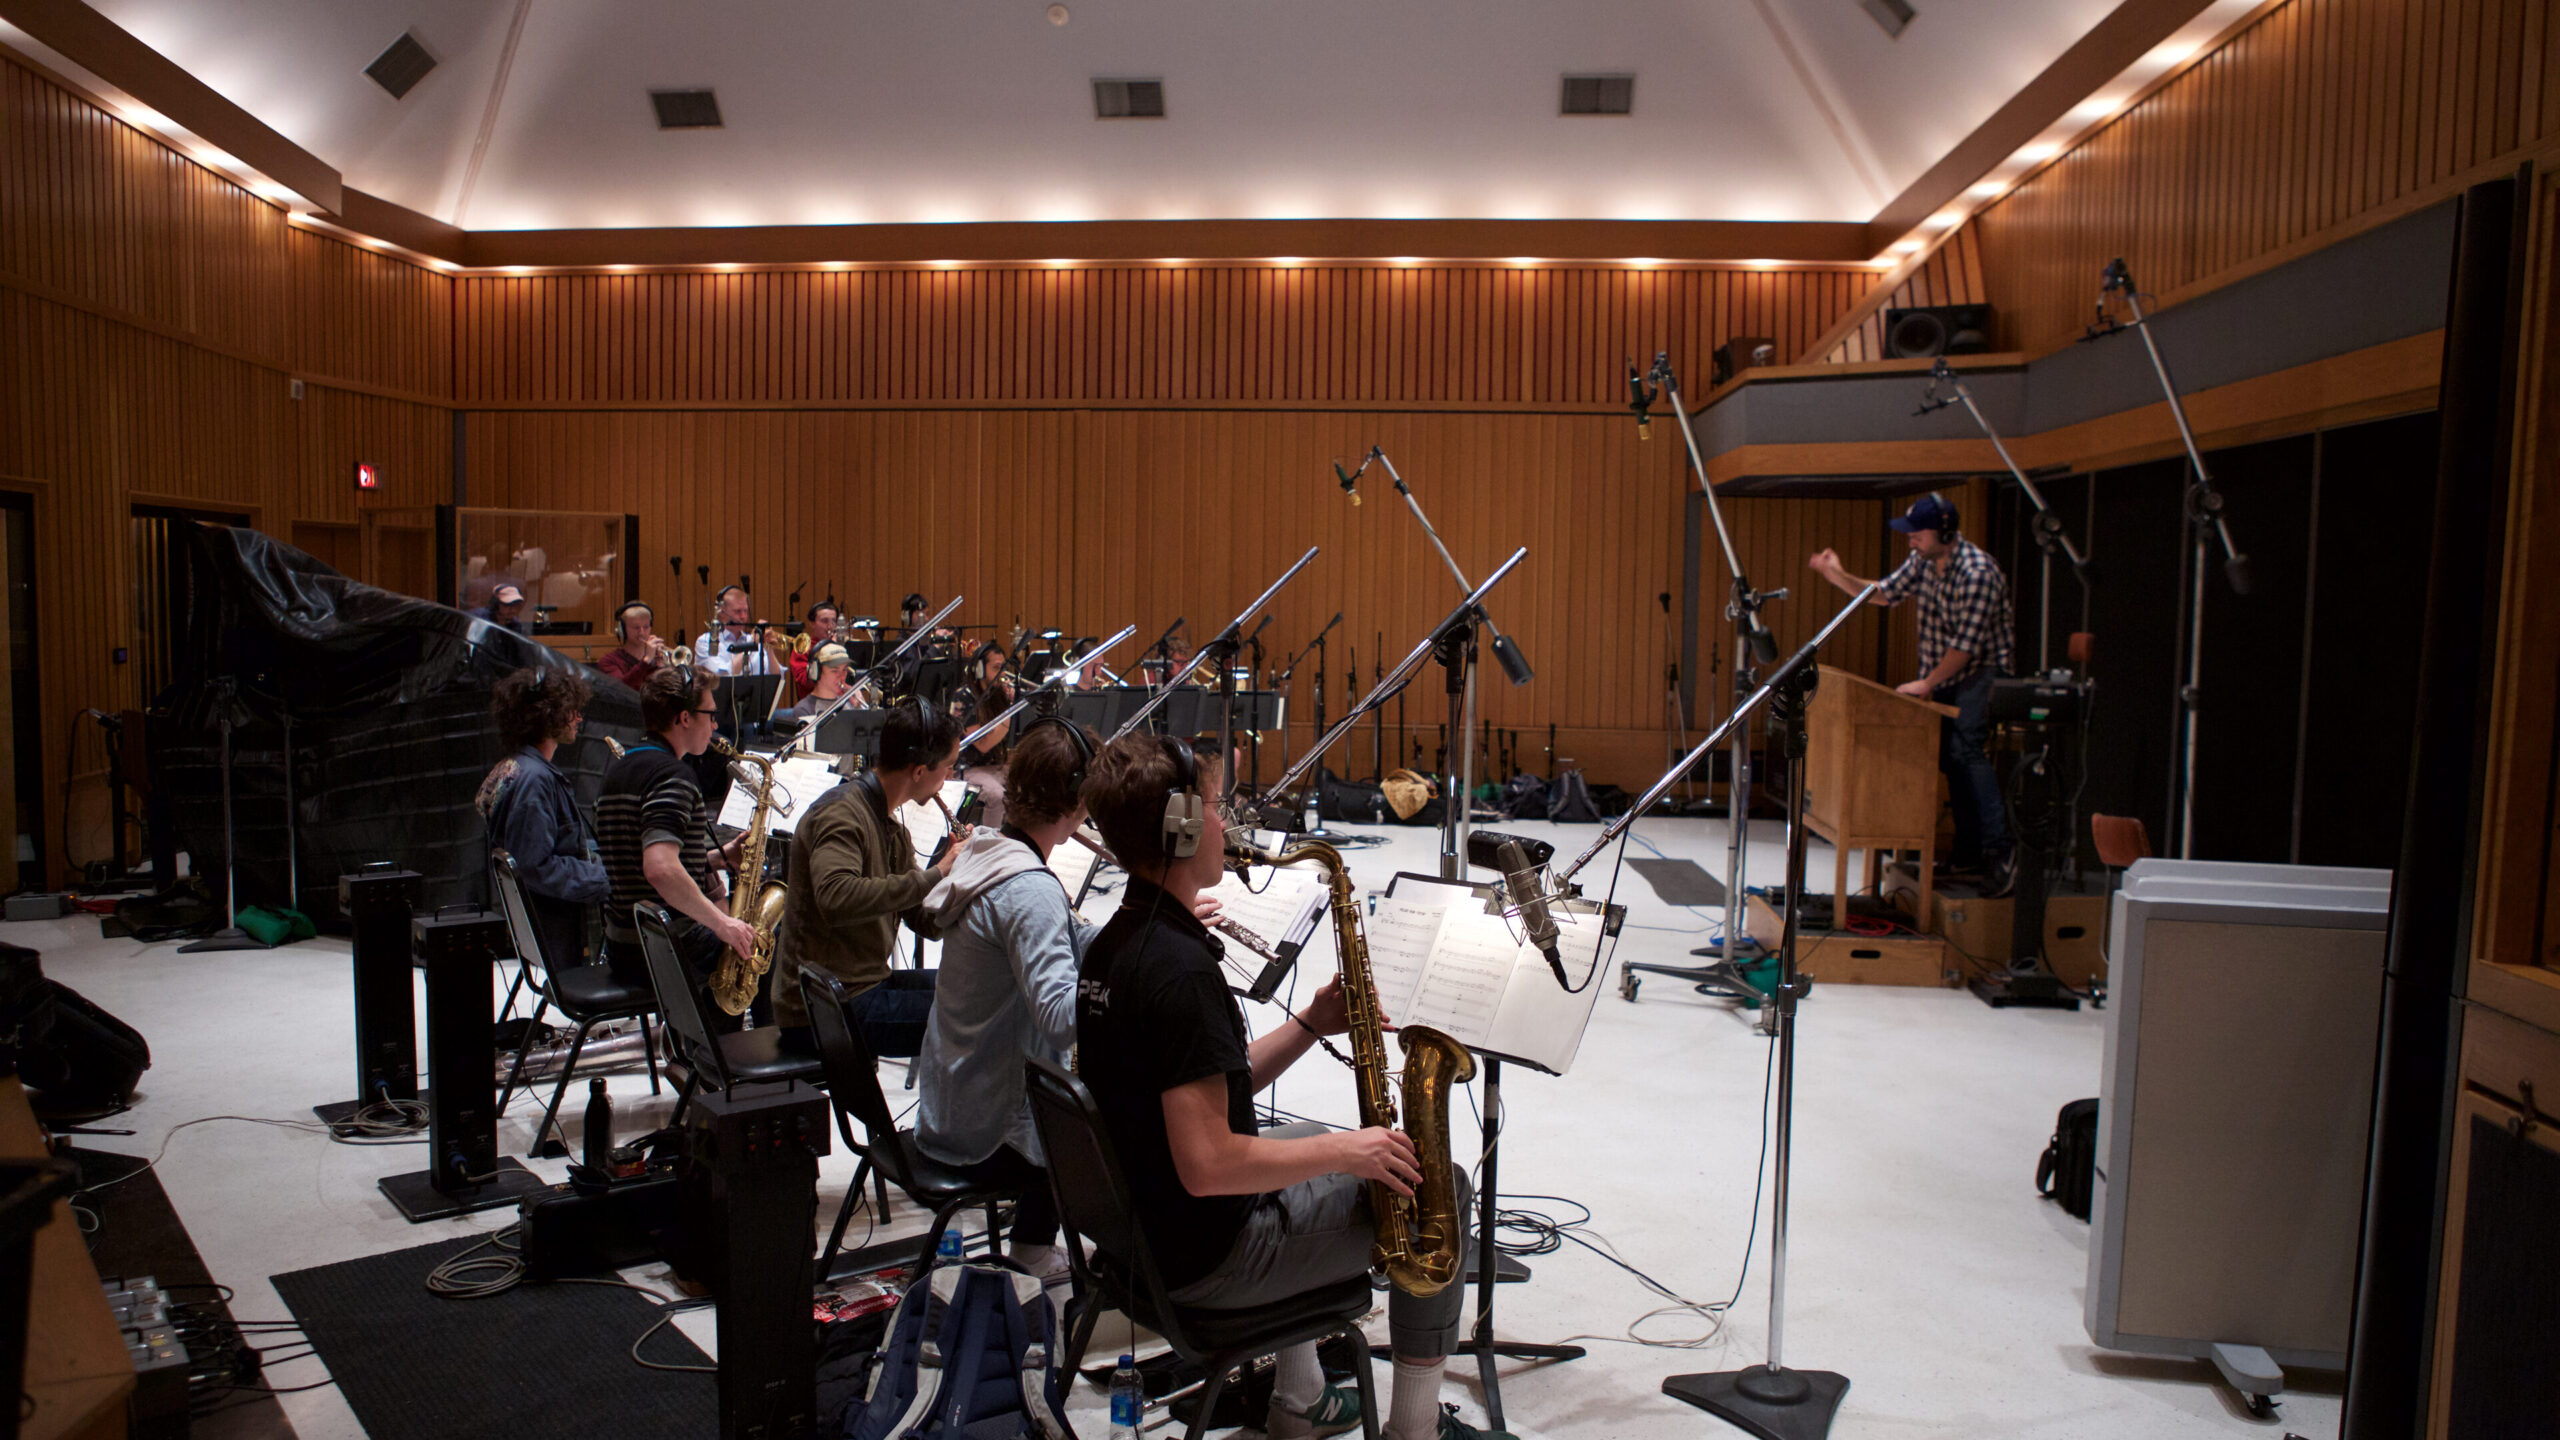 Student jazz musicians record reed instruments at Studio A, a recording studio in the Capitol Records building.